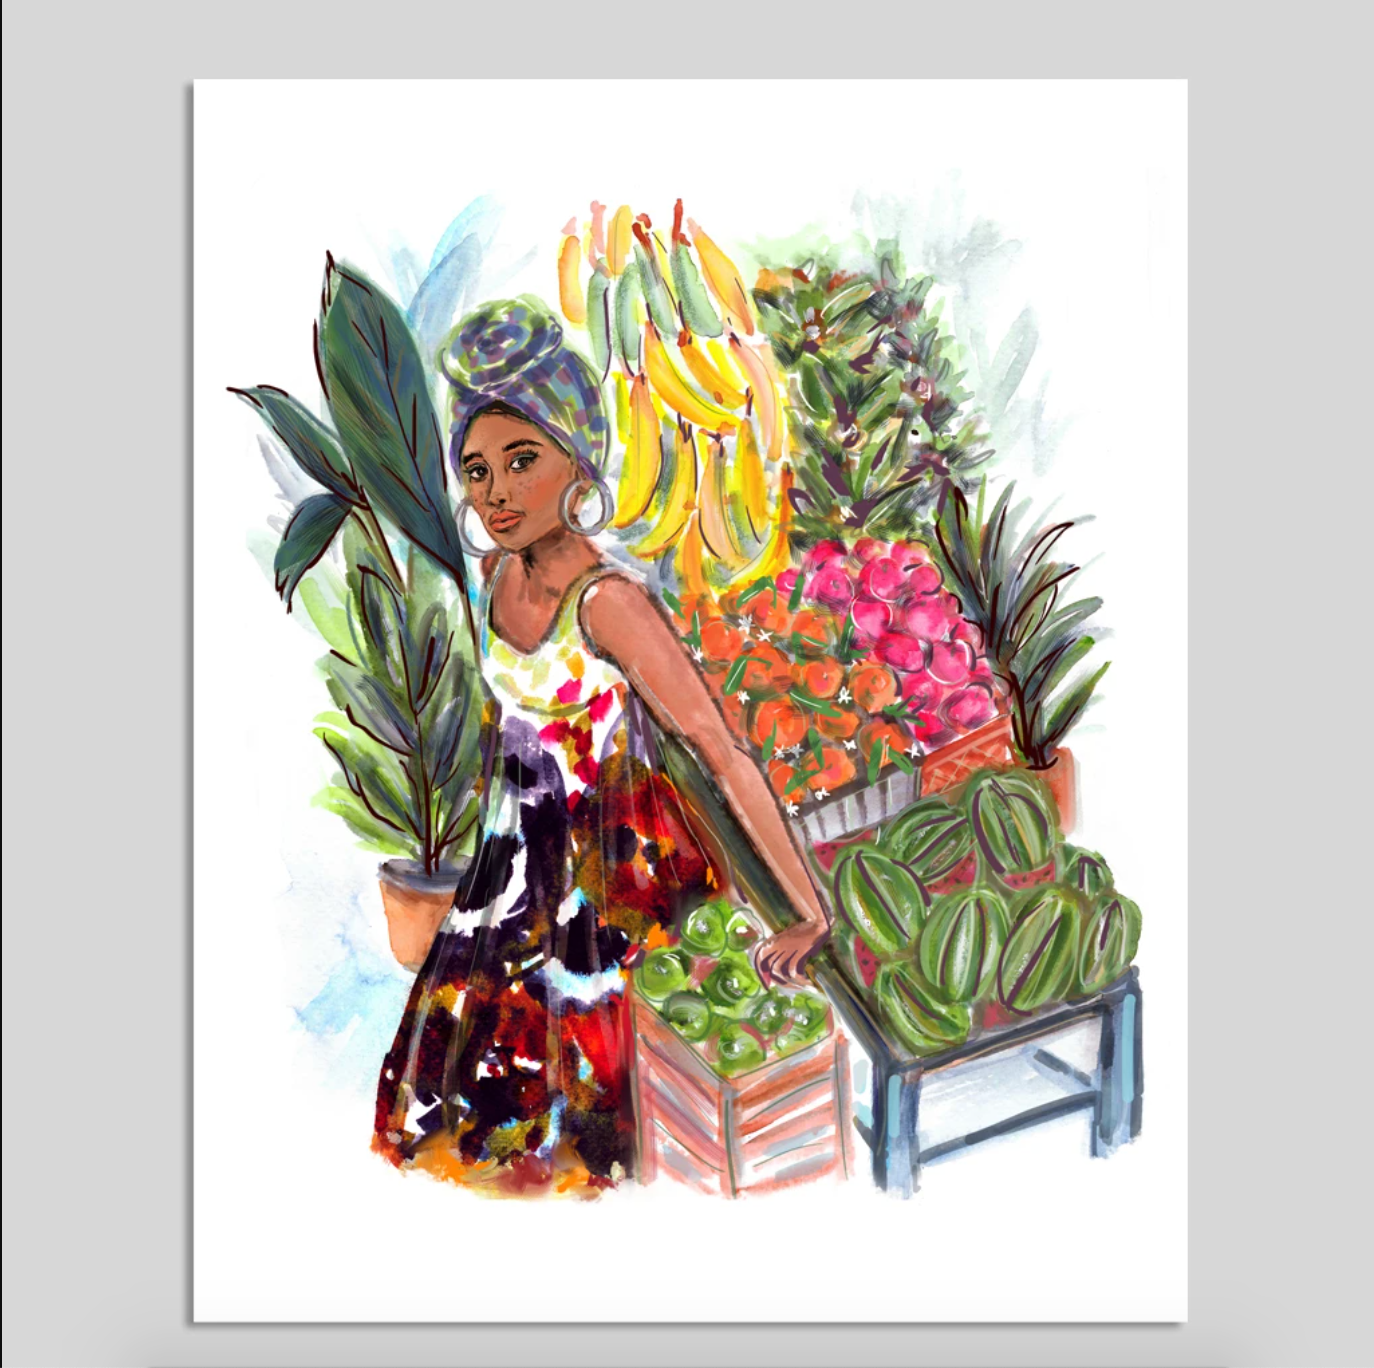 Close up of a drawing of a woman relaxing near a fruit stand